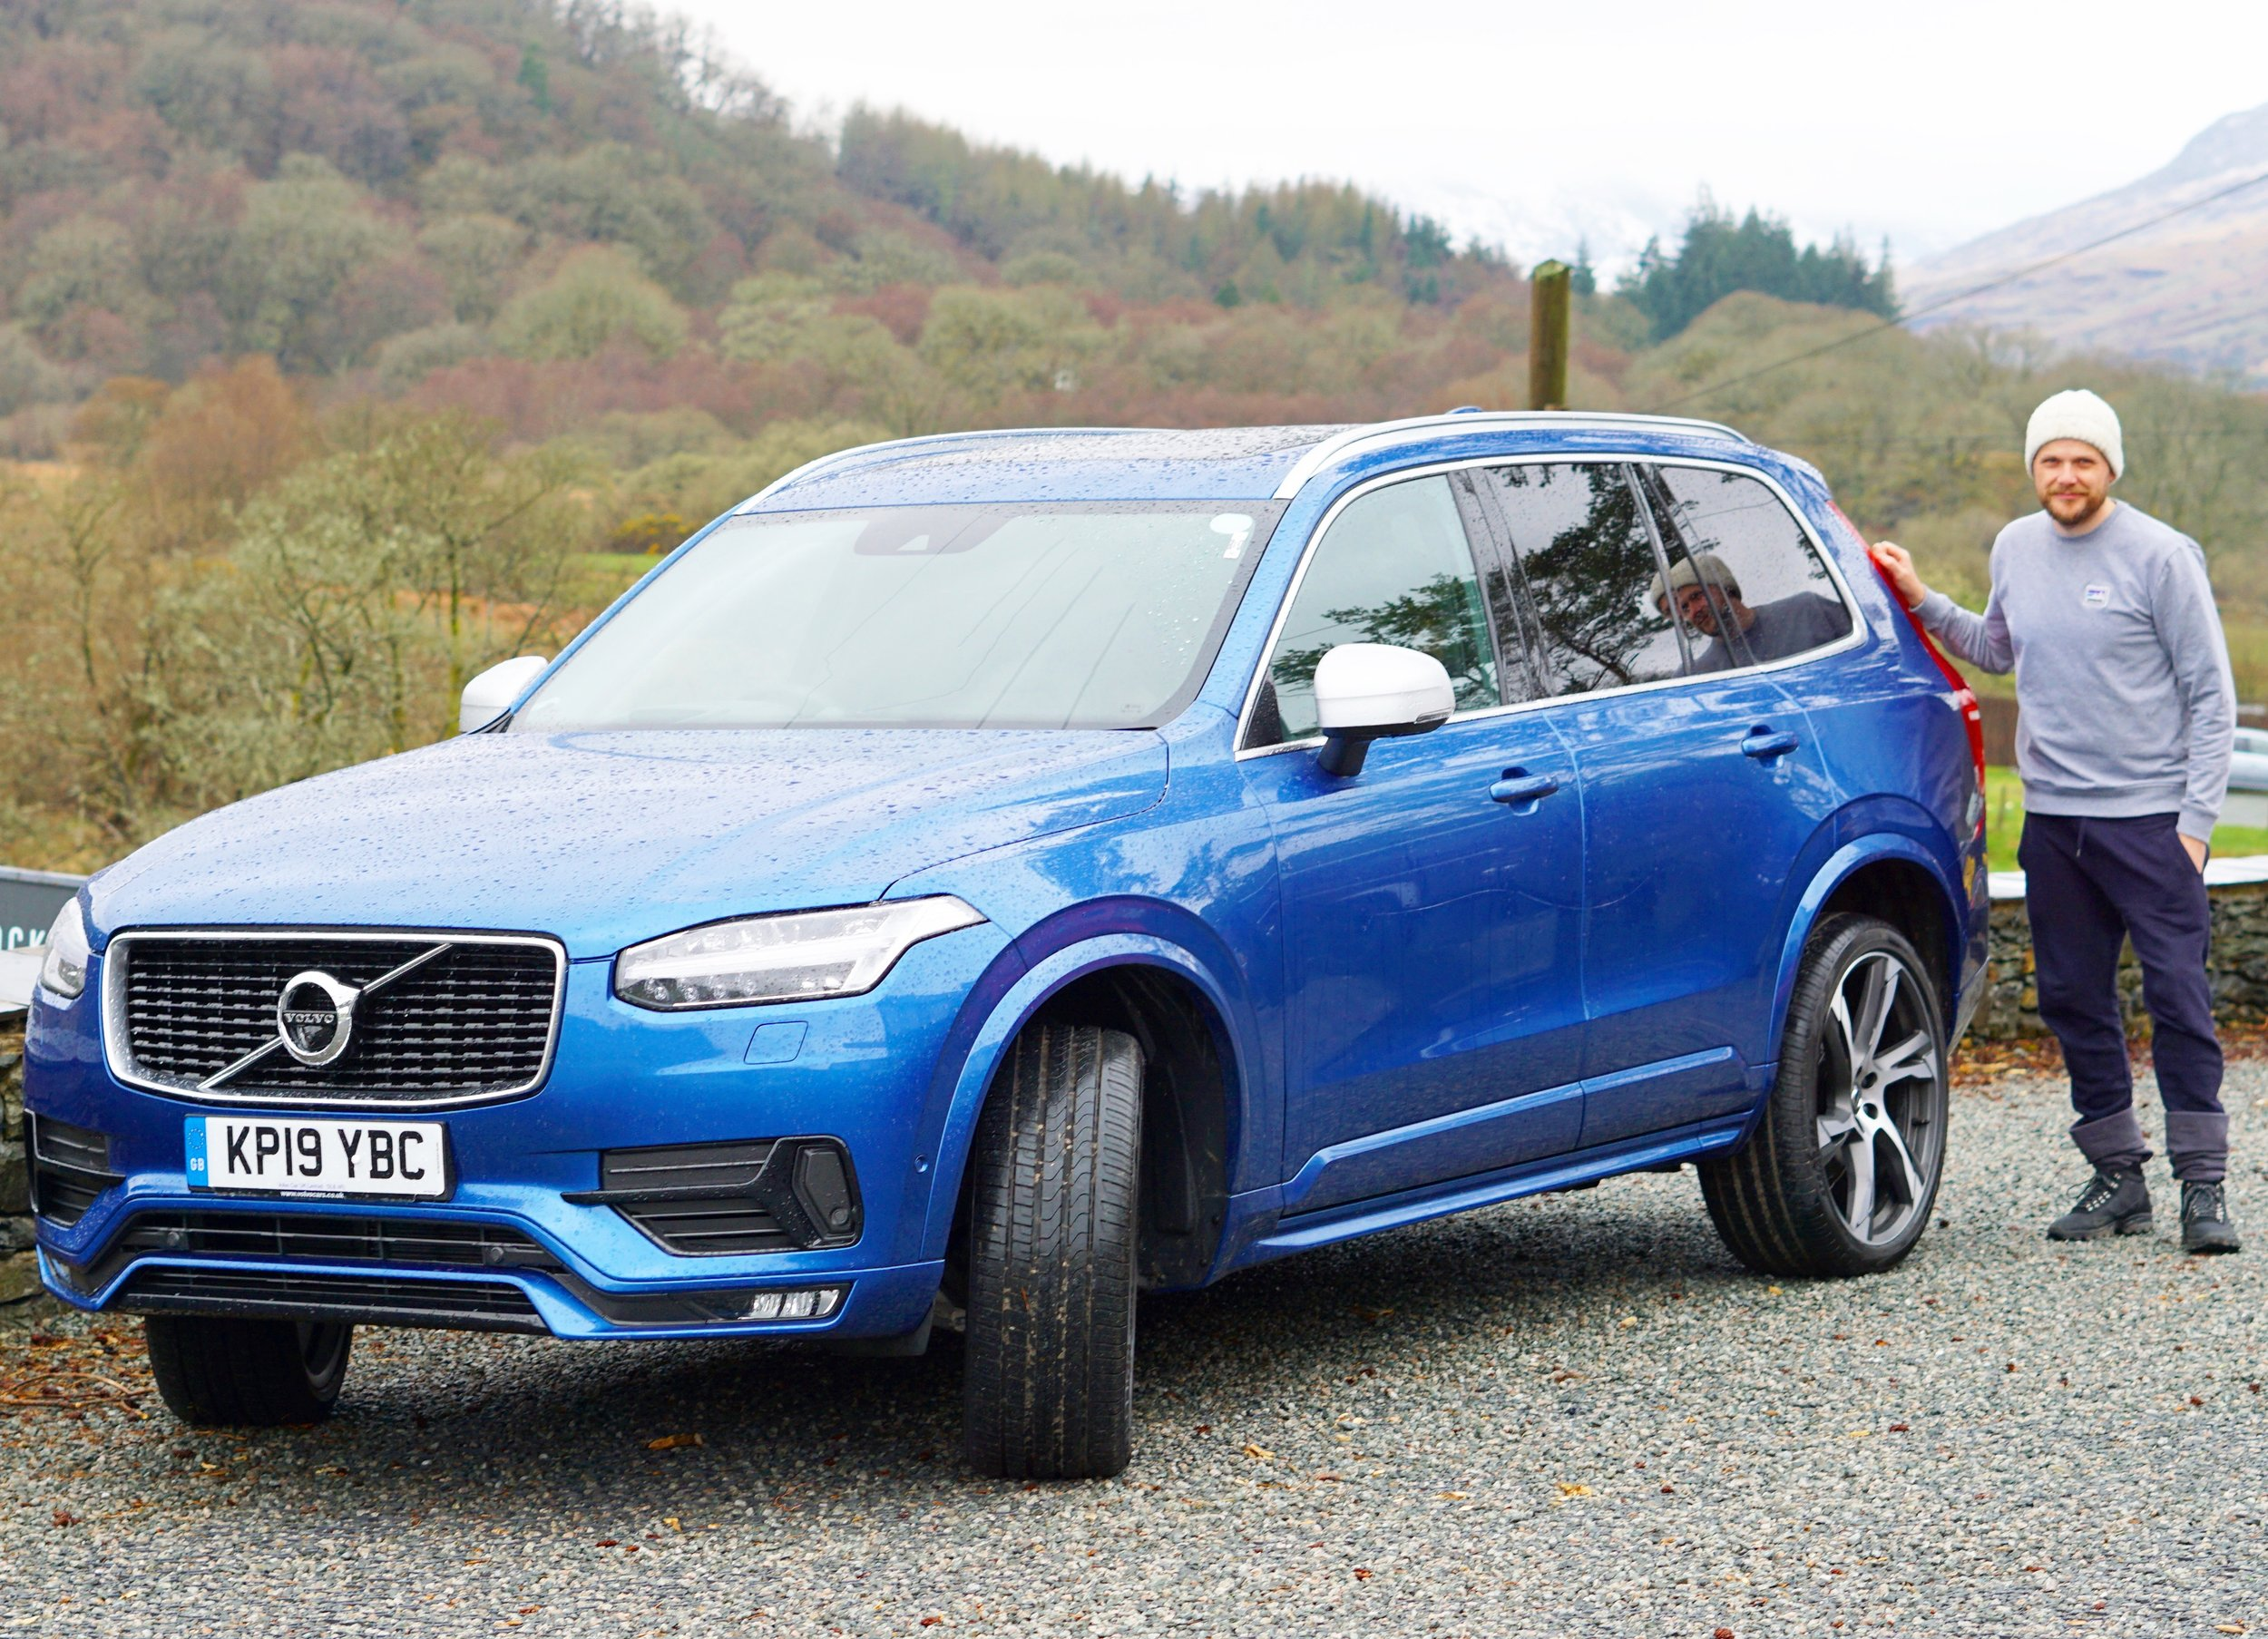 WE WERE KINDLY GIVEN THIS AMAZING VOLVO XC90 FOR OUR TRIP BY VOLVO UK (CLICK PIC TO READ MY REVIEW)